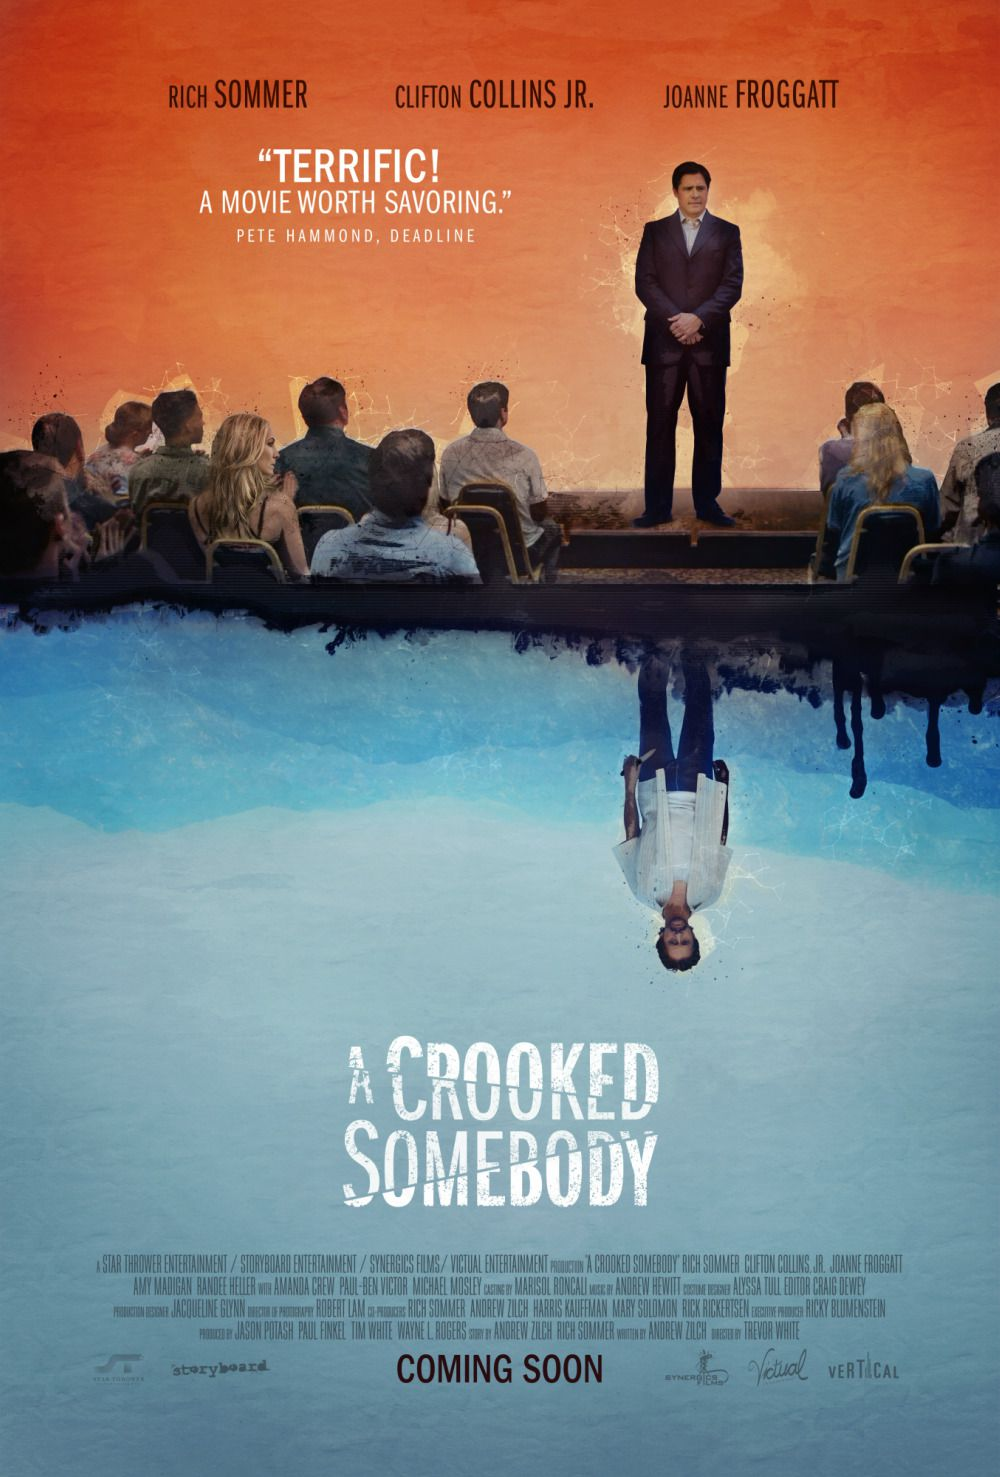 A Crooked Somebody (2018) - film poster